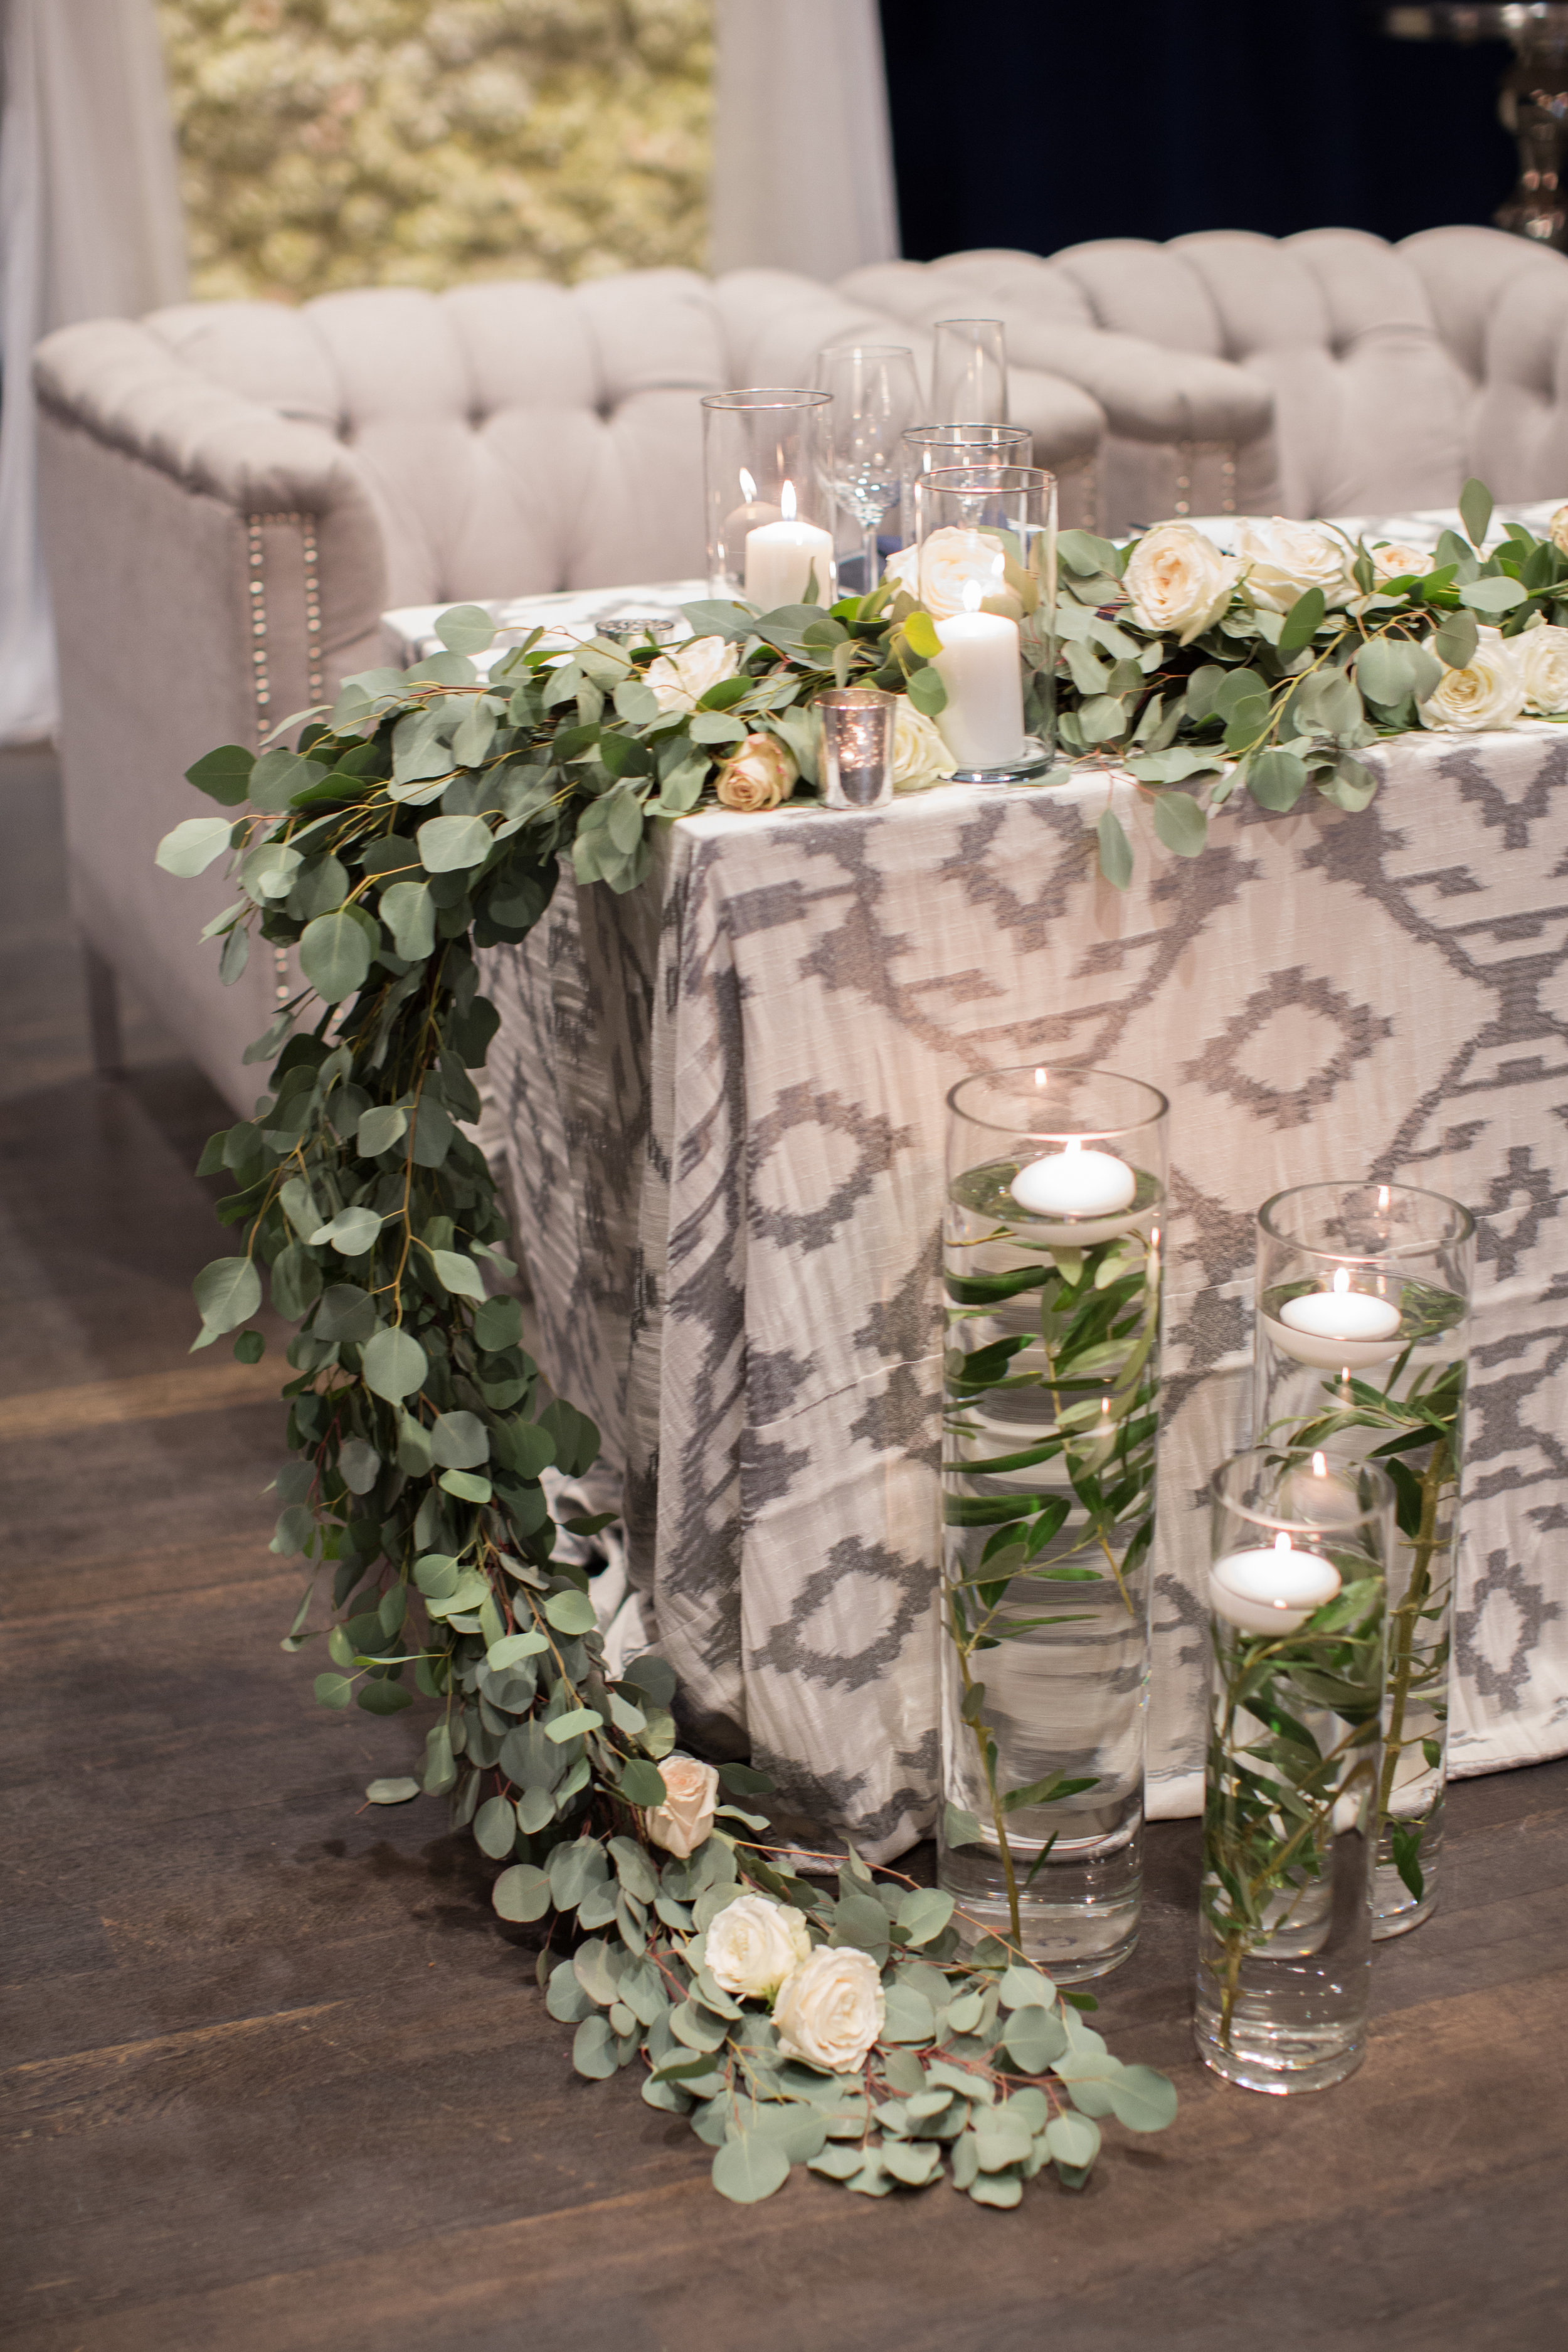 45 sweetheart table comfortable seating bride groom couch floral sweetheart table floating candles white hydrangea backdrop Life Design Events photos by Melissa Jill Photography.jpg